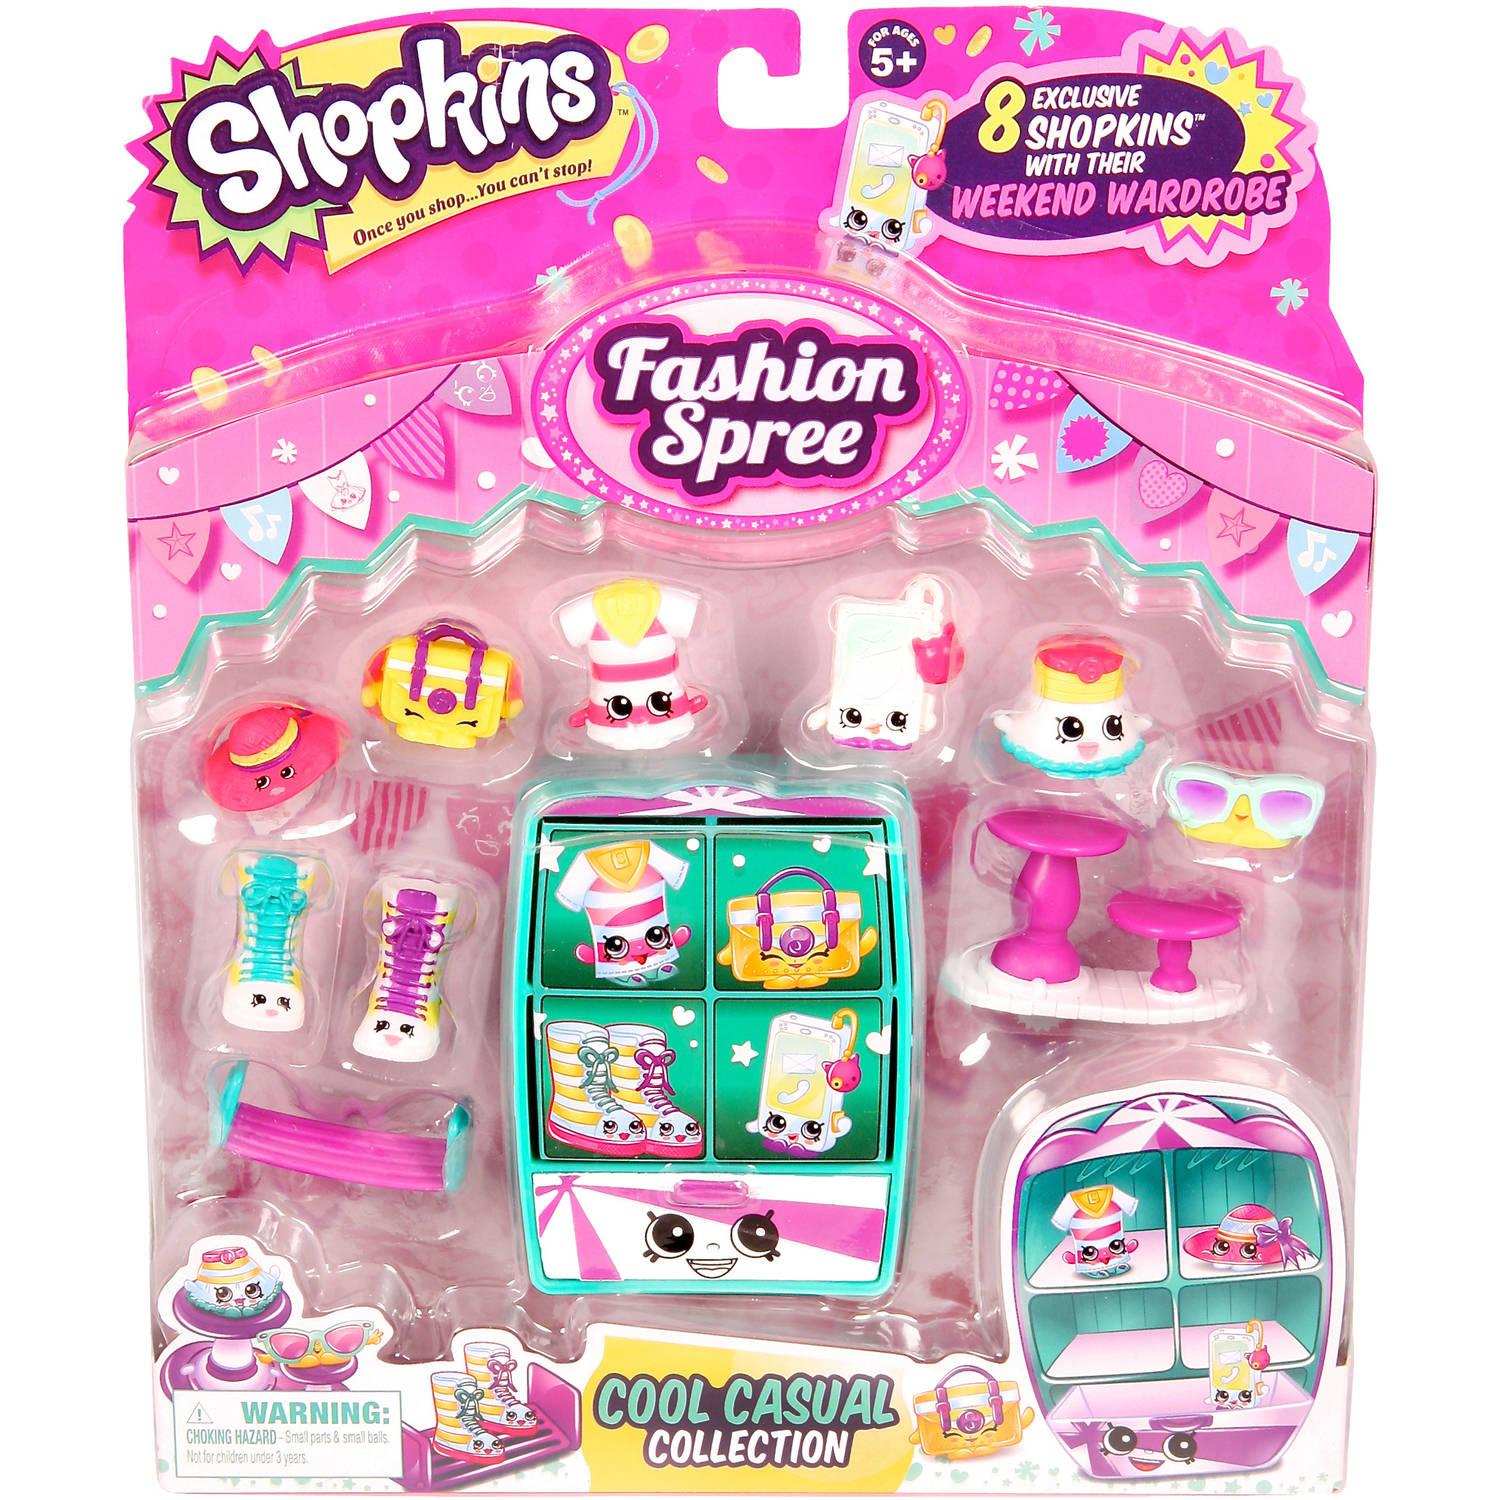 Moose Toys Shopkins Season 3 Fashion Spree Themed Pack Cool N Casual